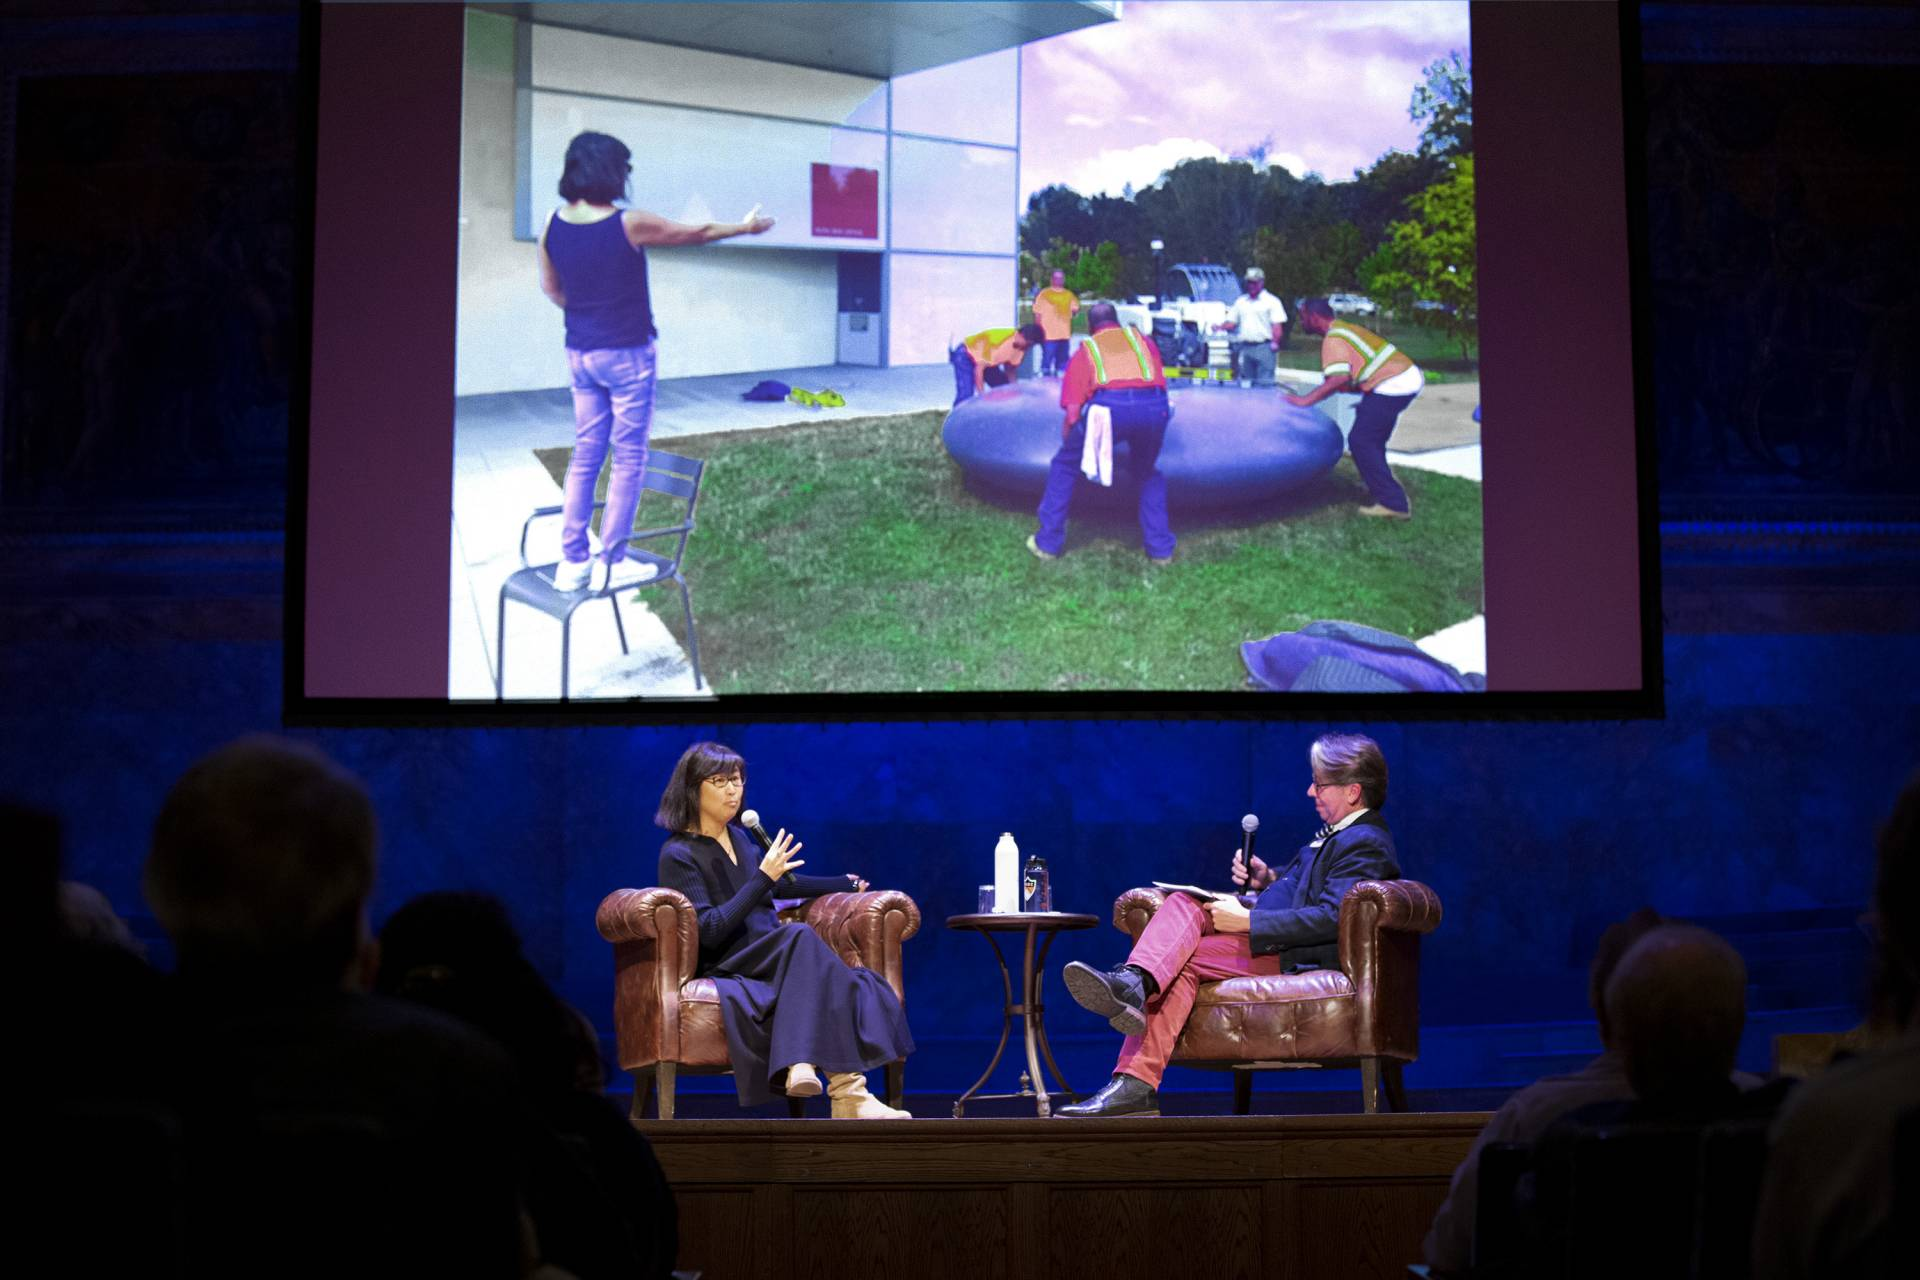 Maya Lin speaks with James Steward on stage about her installation and projects on a screen an image of her directing her colleagues positioning a large grey inner tube on a grassy square